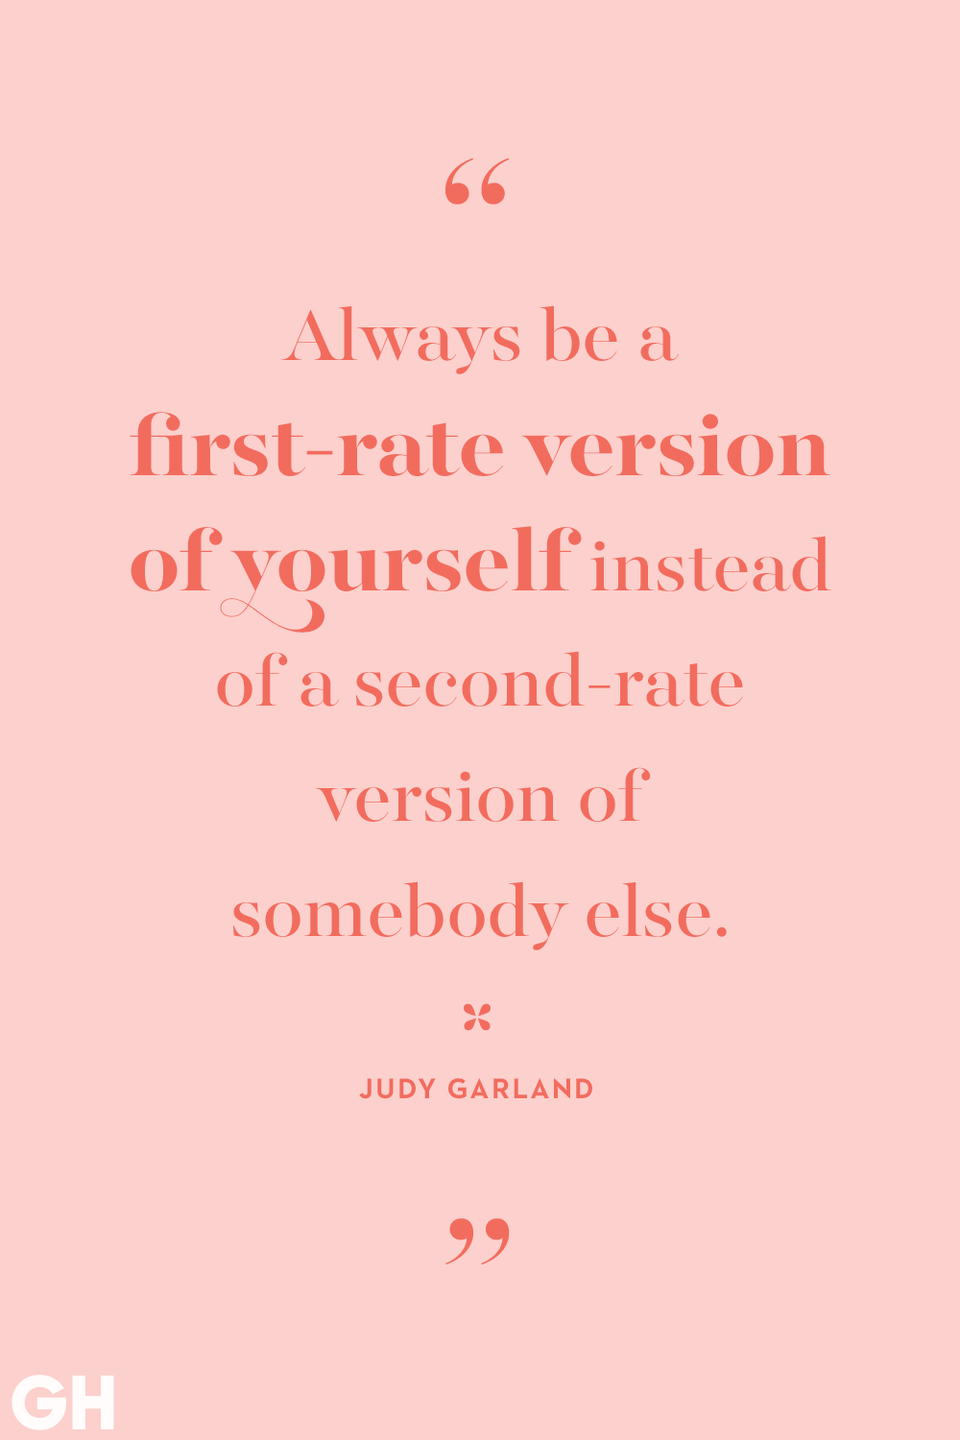 <p>Always be a first-rate version of yourself instead of a second-rate version of somebody else.</p>